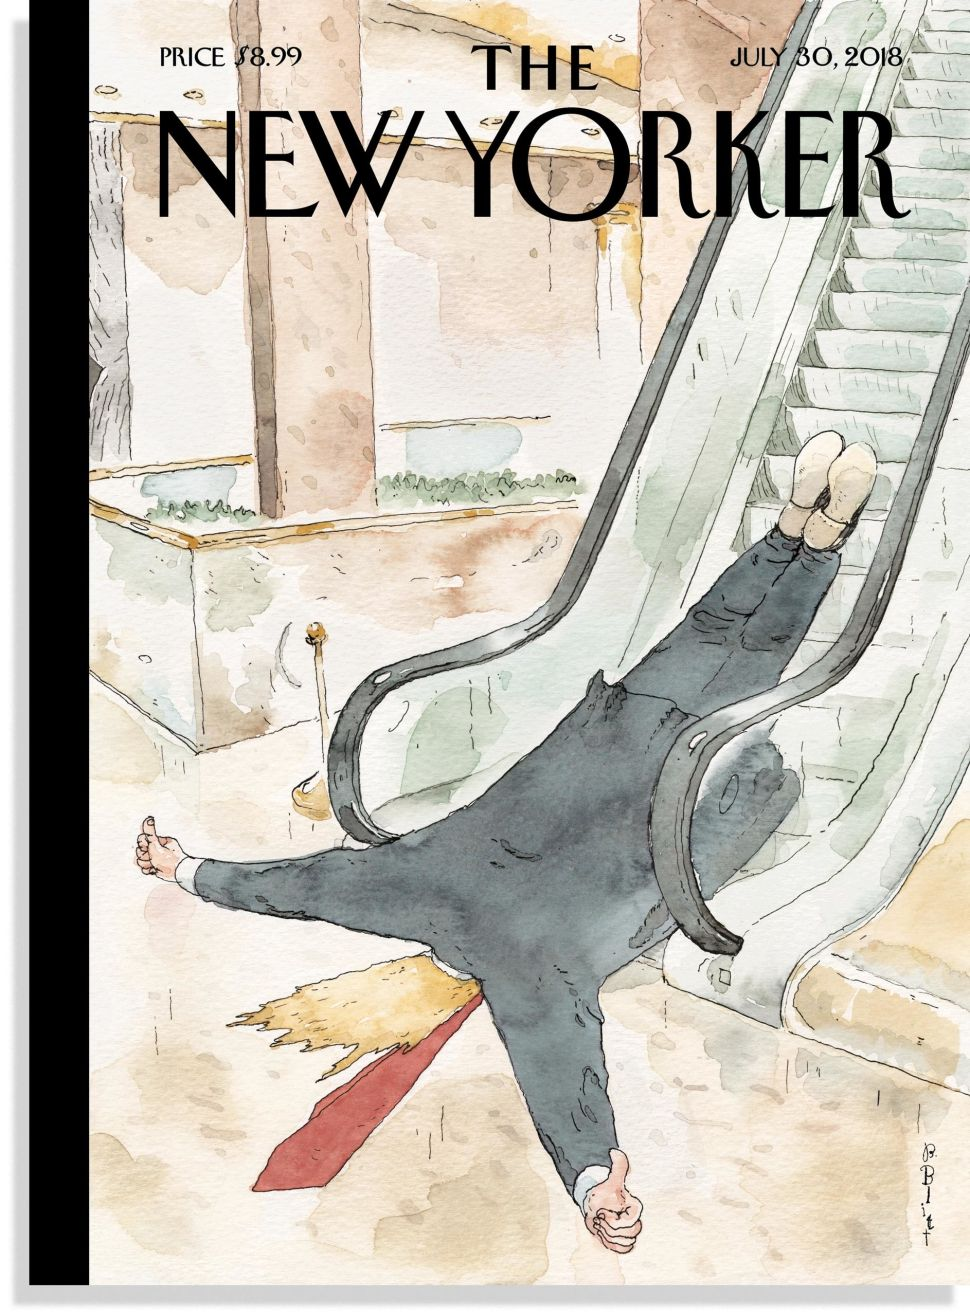 "The New Yorker's ""Thumbs-Up"" cover featuring President Donald Trump."